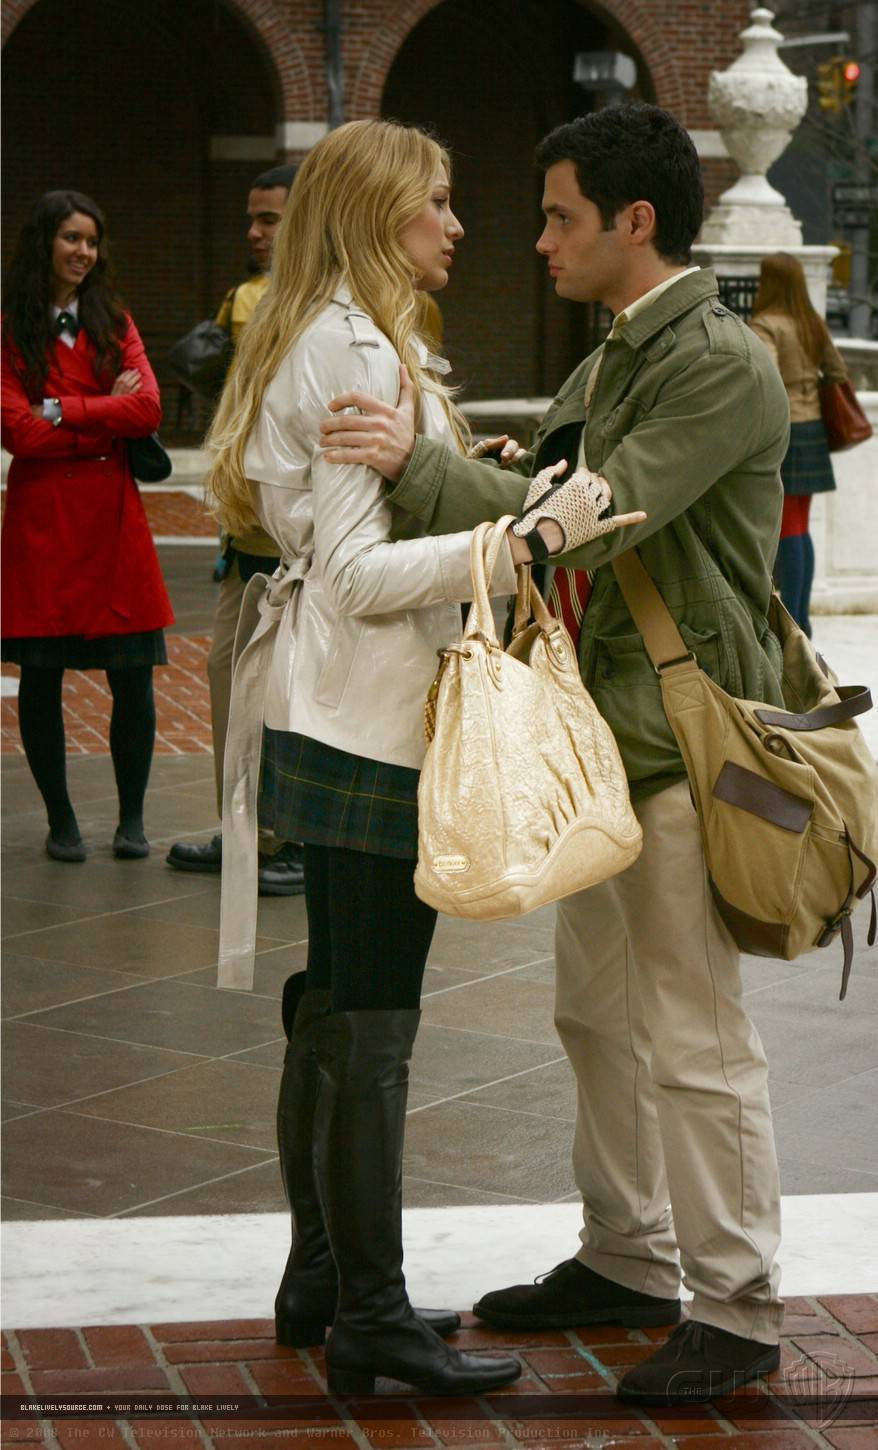 http://images2.fanpop.com/image/photos/10900000/1-15-Episode-Stills-serena-van-der-woodsen-10964263-878-1450.jpg